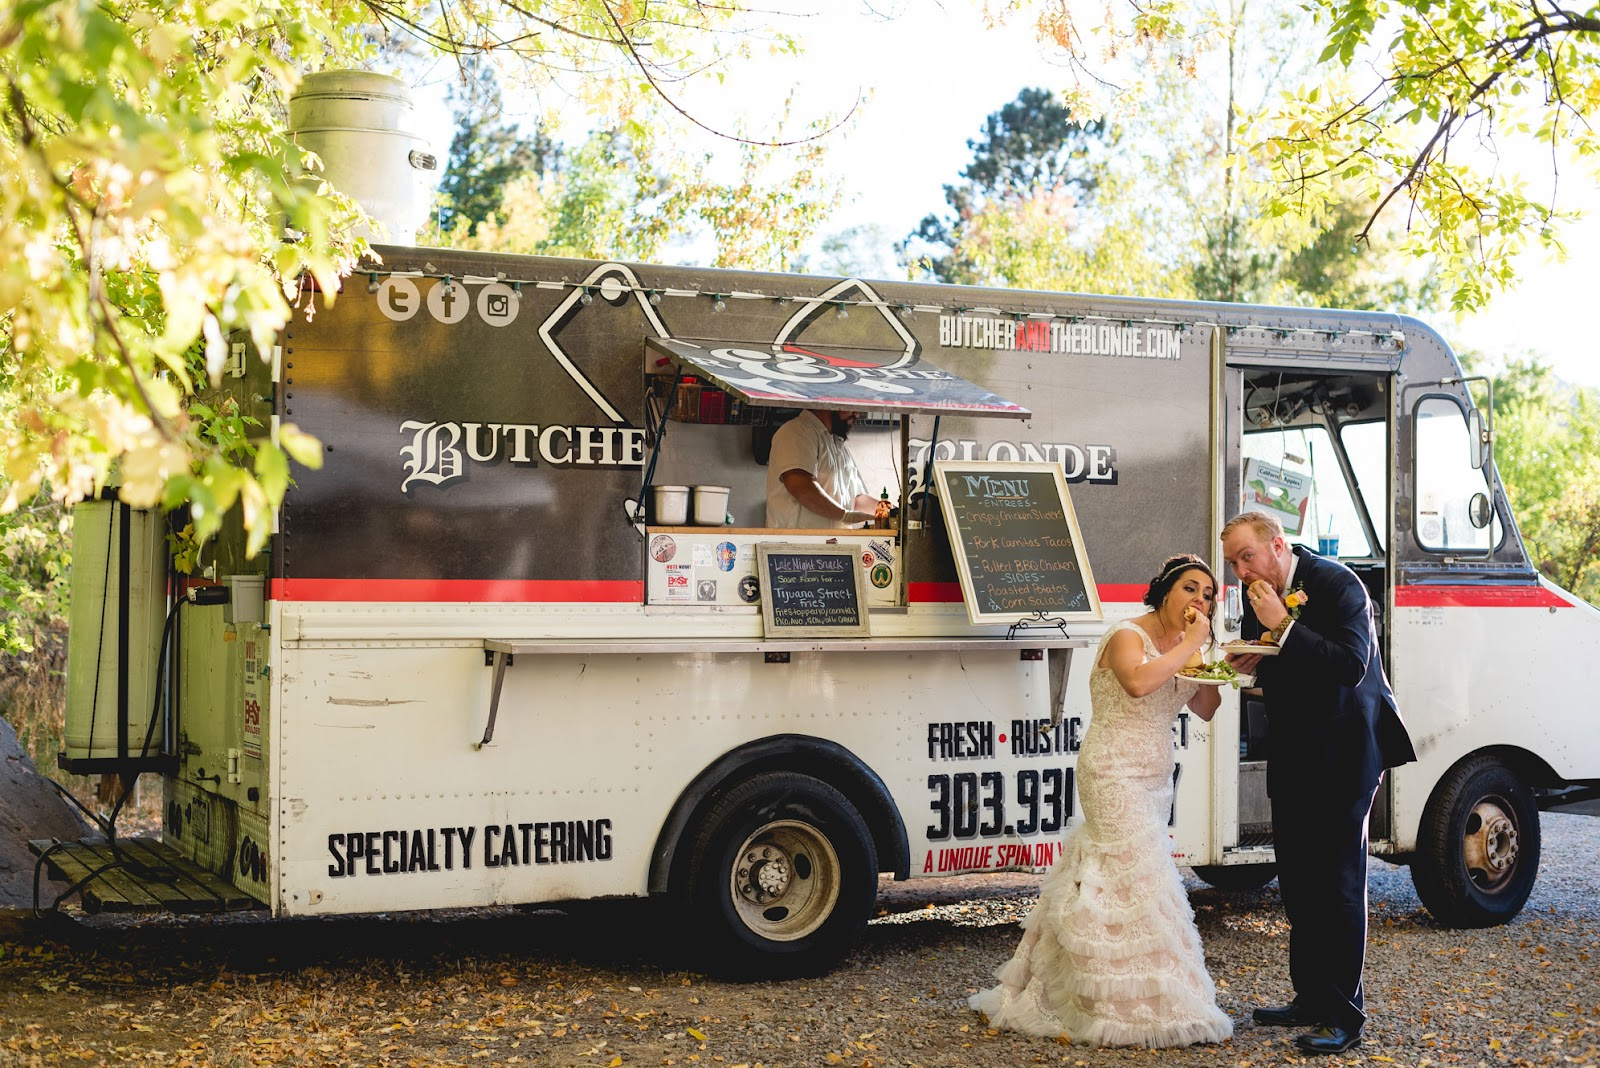 Bride and groom eating from a food truck at a wedding reception